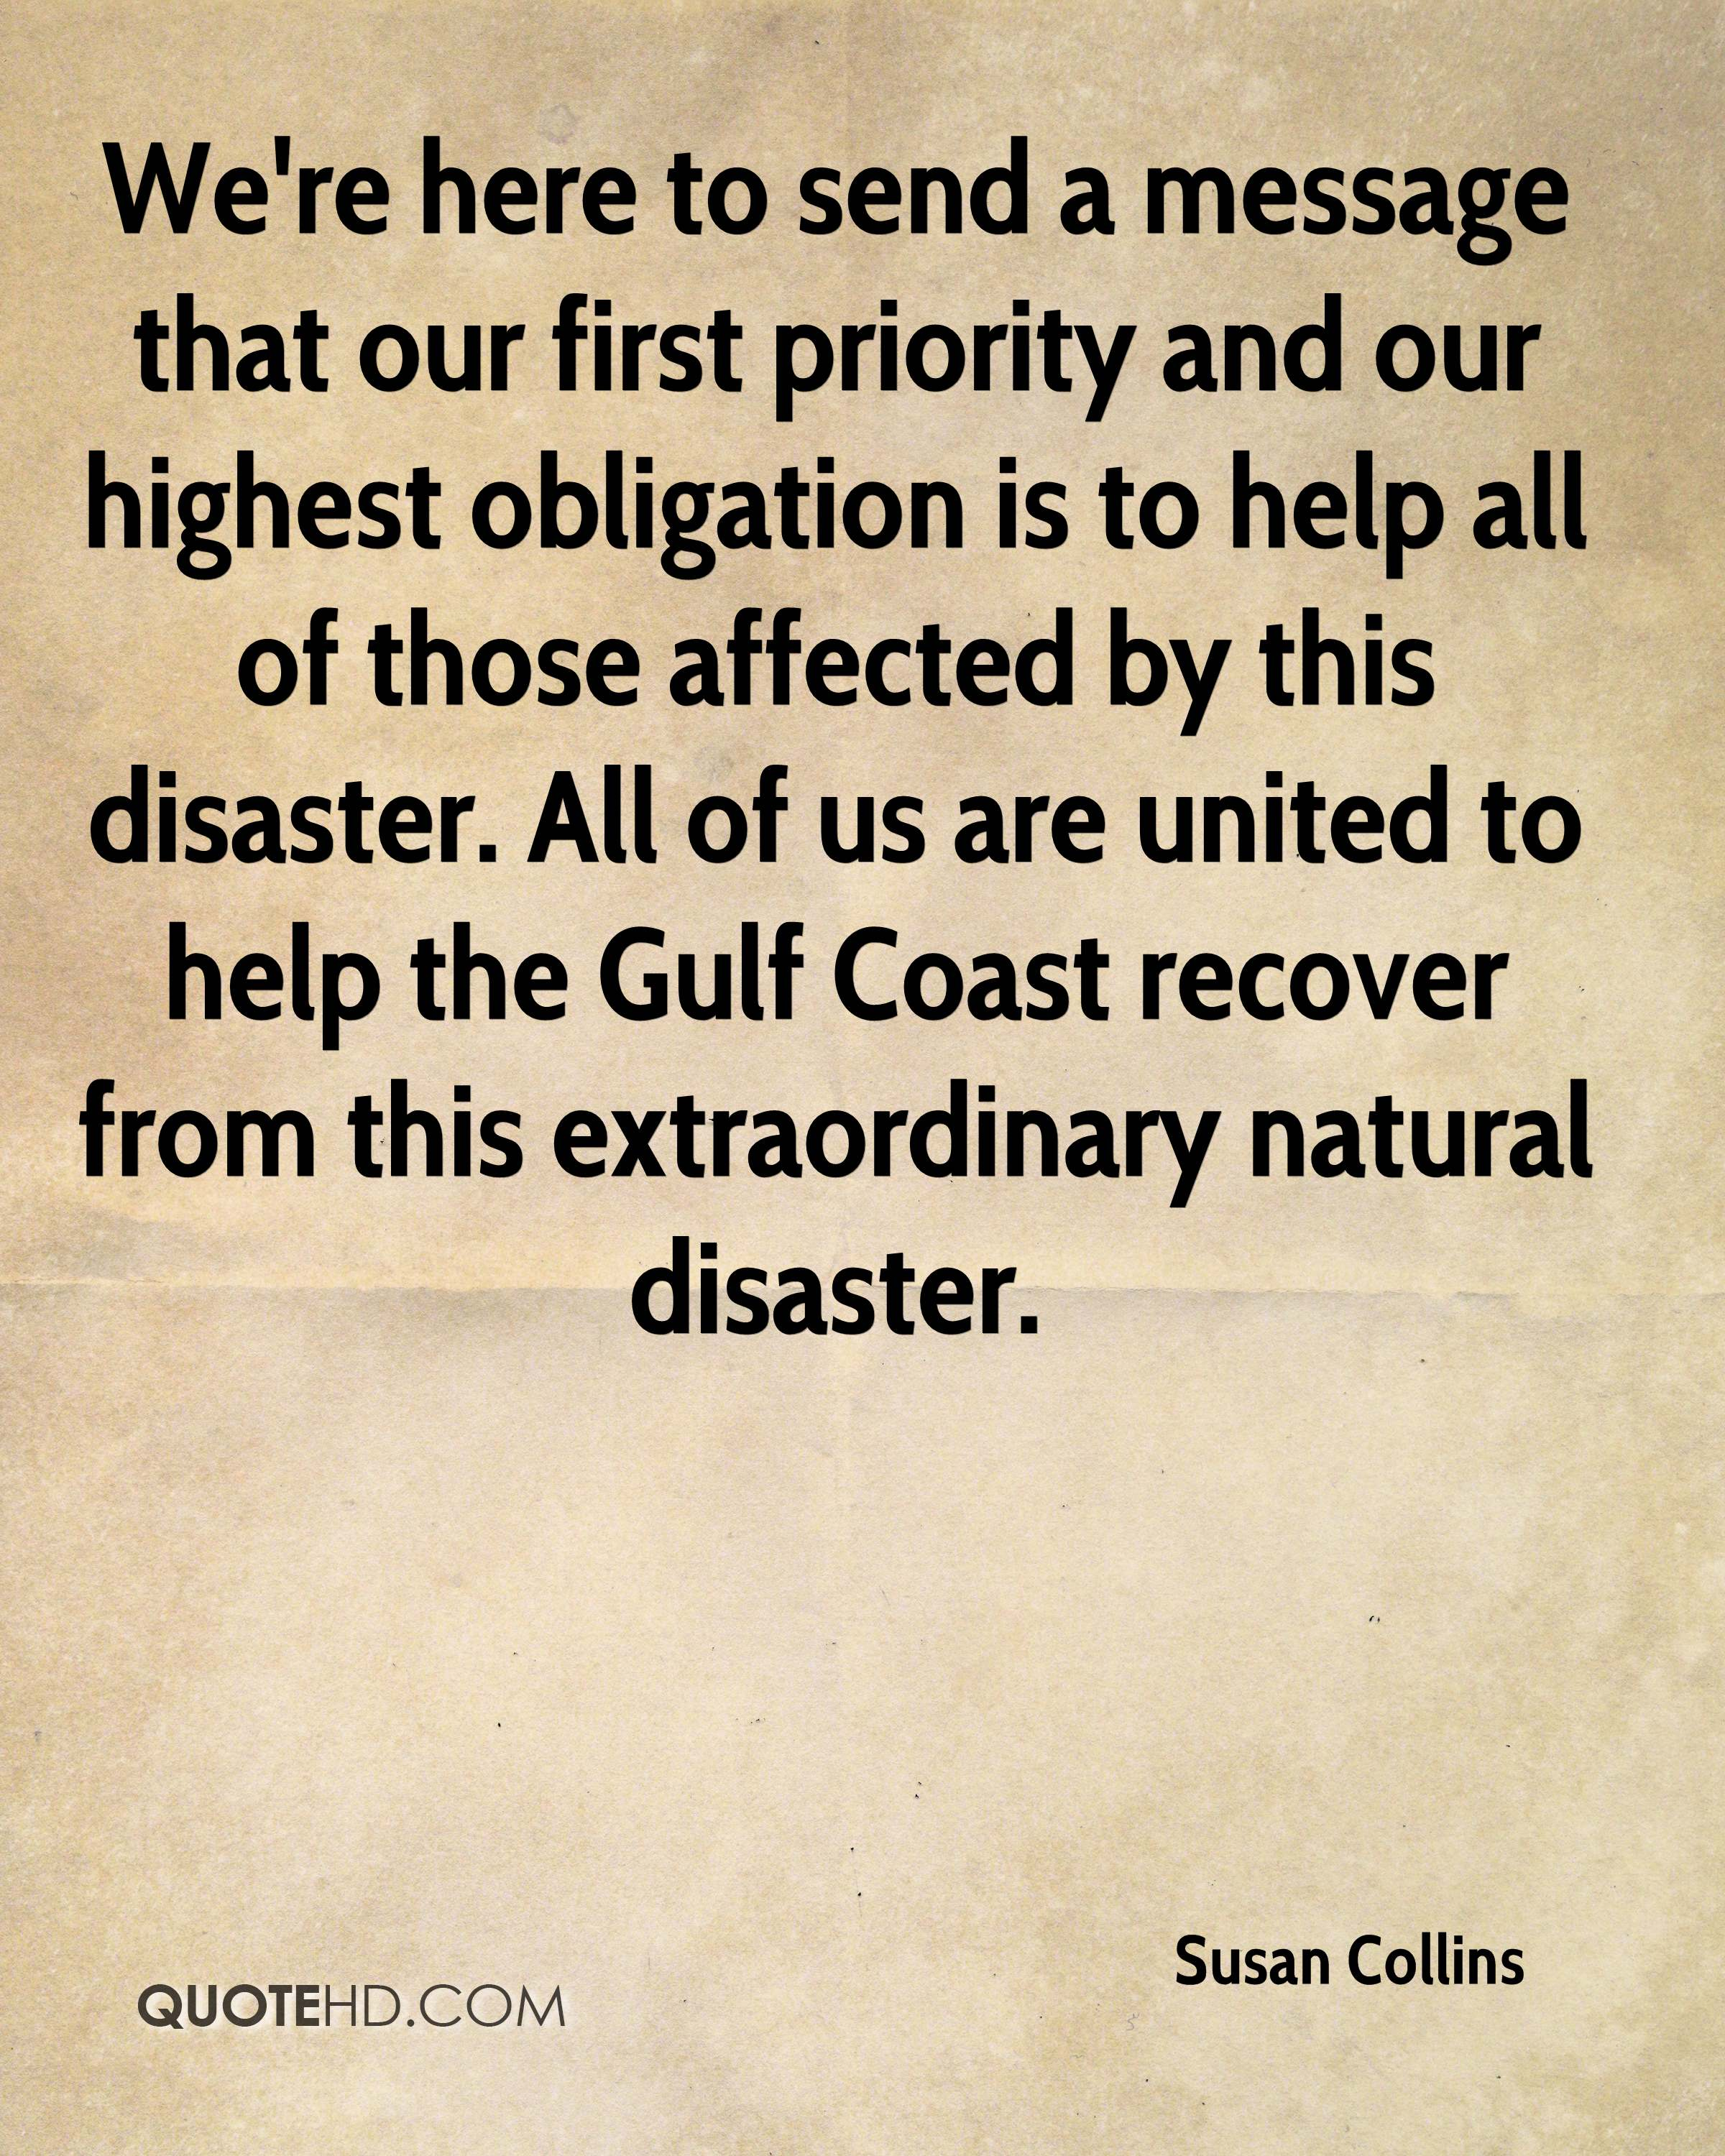 We're here to send a message that our first priority and our highest obligation is to help all of those affected by this disaster. All of us are united to help the Gulf Coast recover from this extraordinary natural disaster.